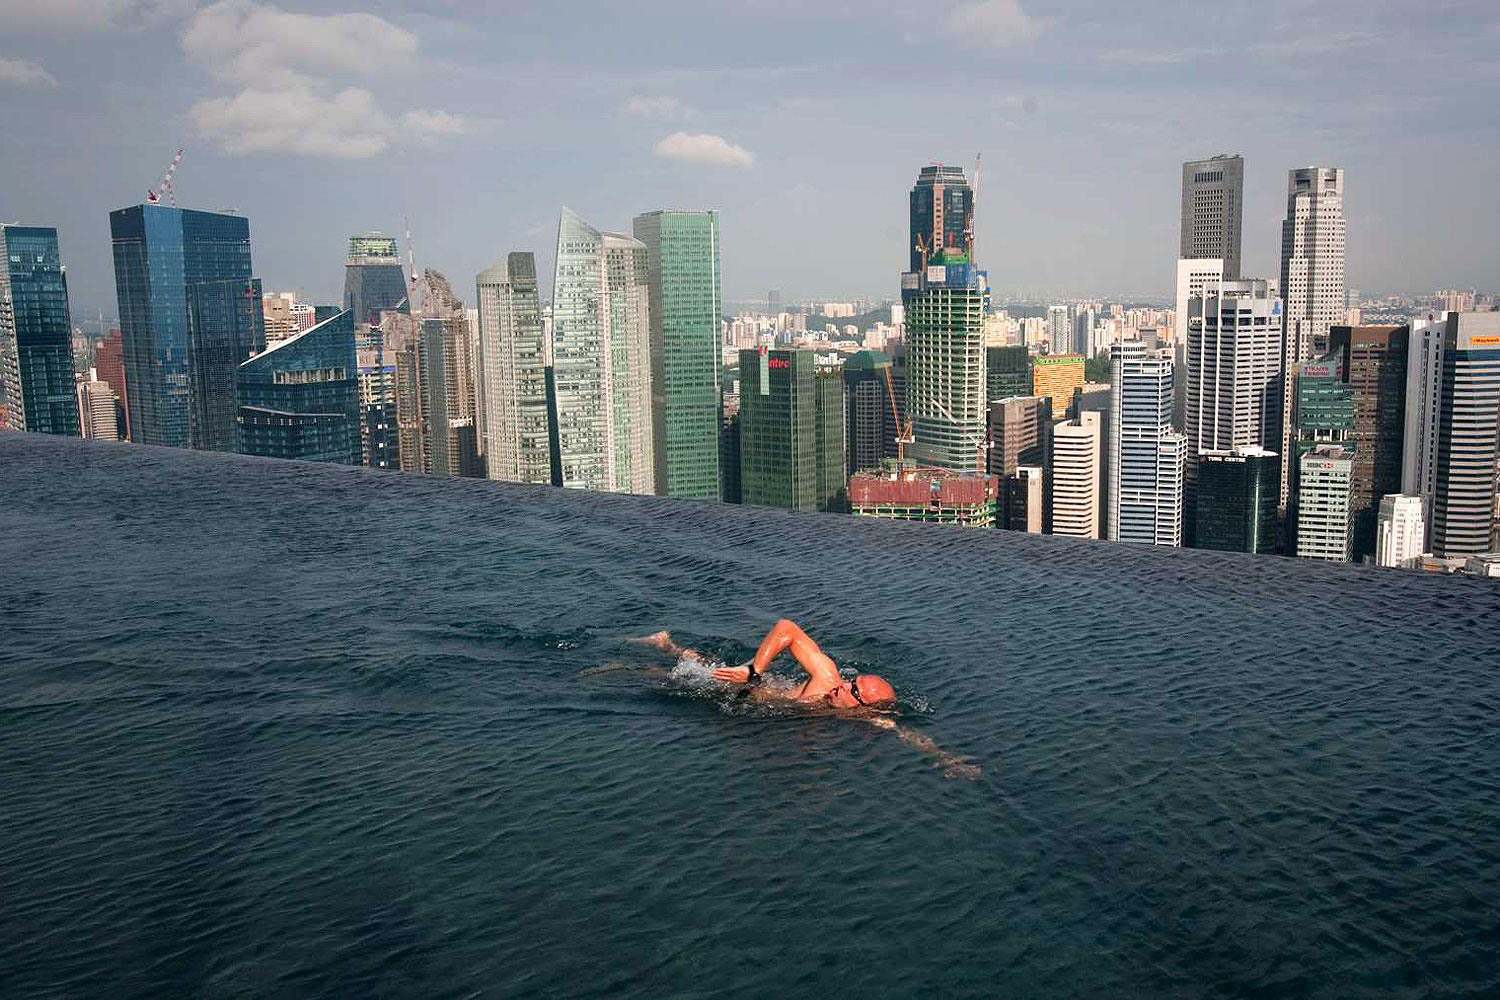 A guest swims in the infinity pool of the Skypark that tops the Marina Bay Sands hotel towers in Singapore June 24, 2010